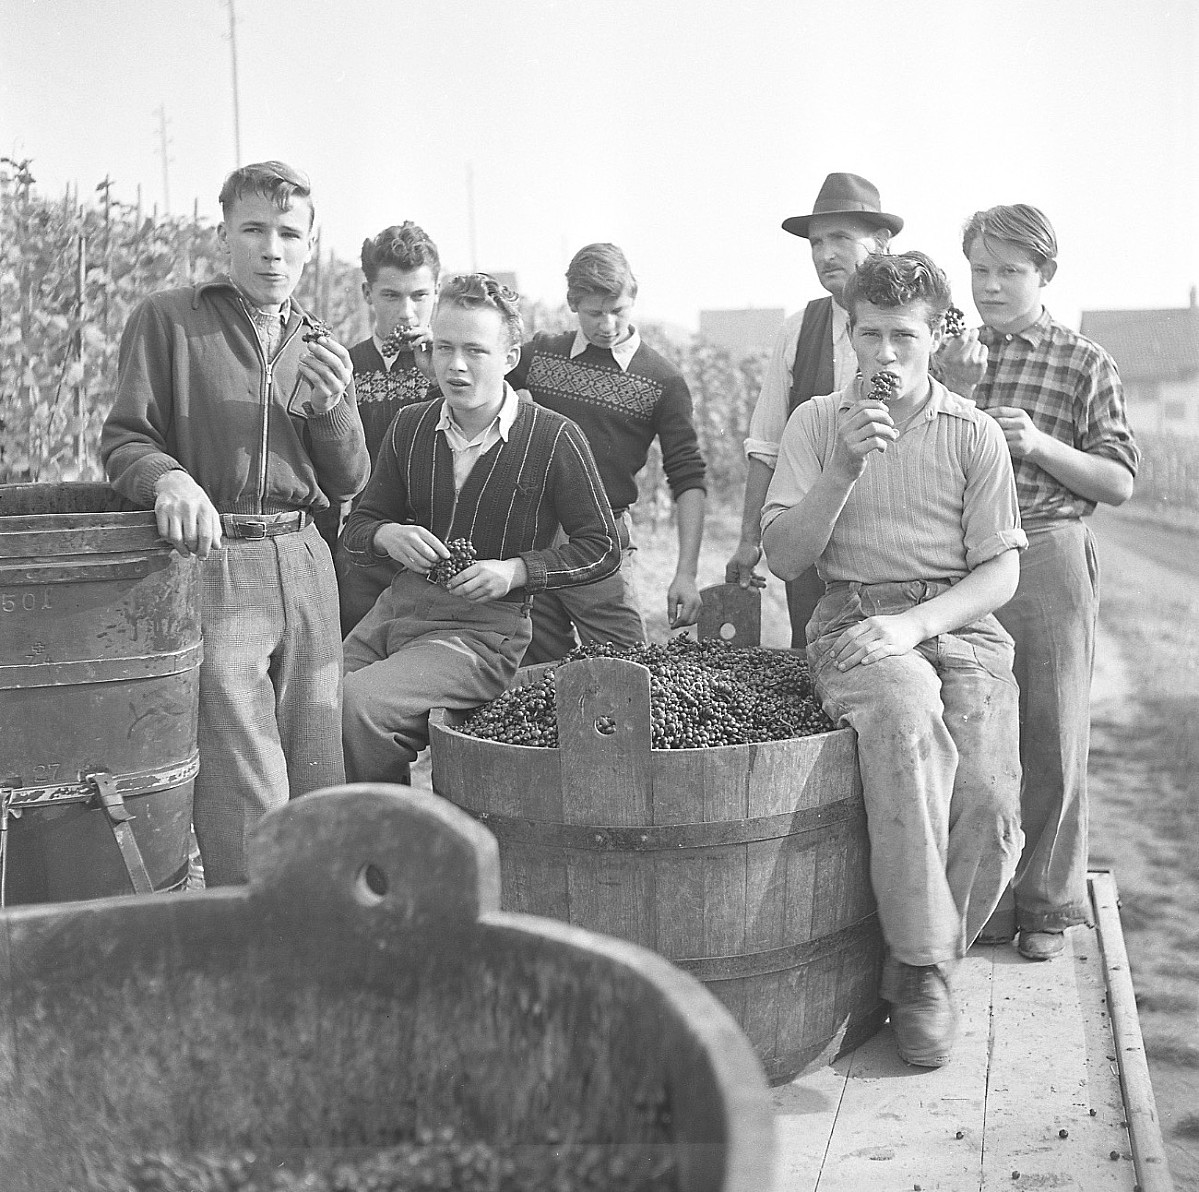 GFA 17/510963.12: Grape harvest at the apprentices' home in Dachsen